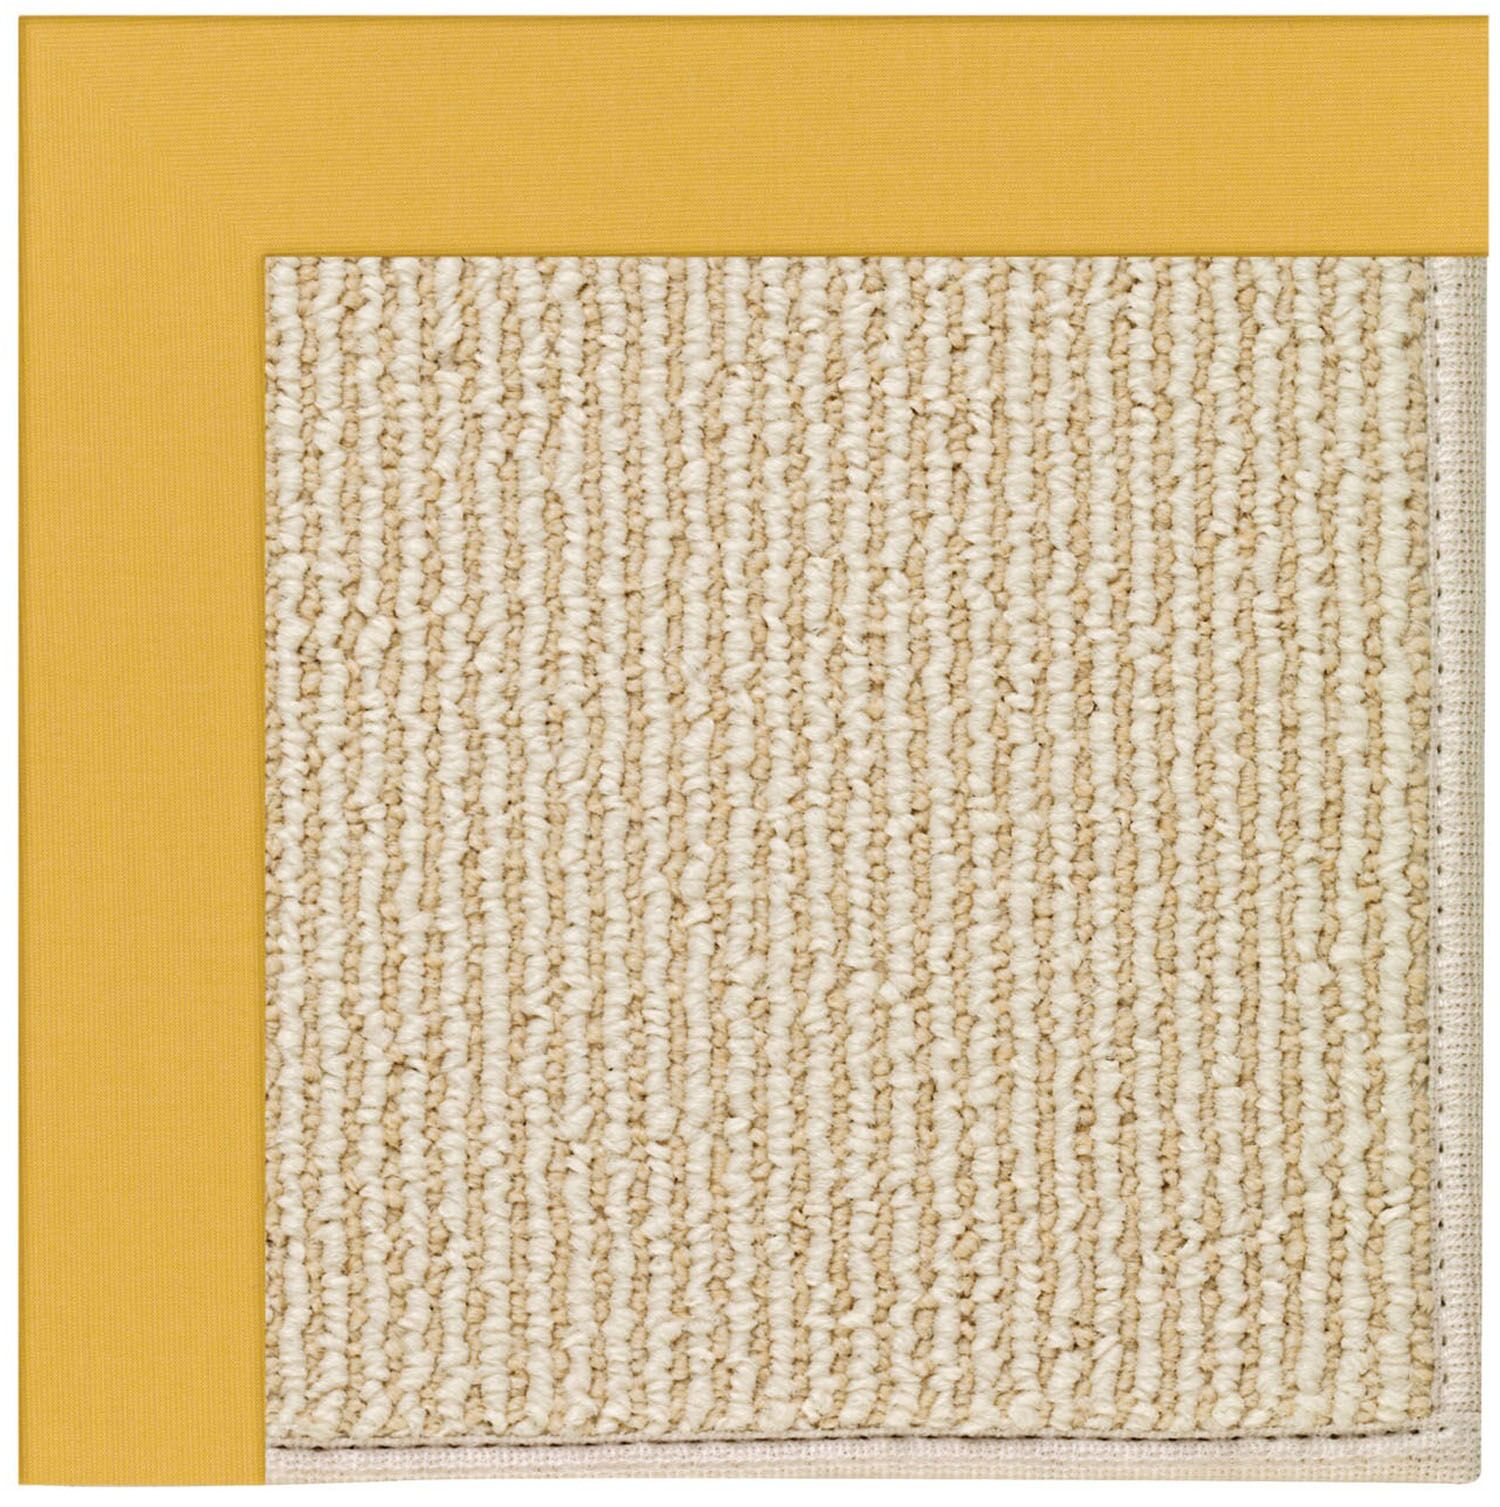 Lisle Machine Tufted Jonquil Indoor/Outdoor Area Rug Rug Size: Rectangle 3' x 5'